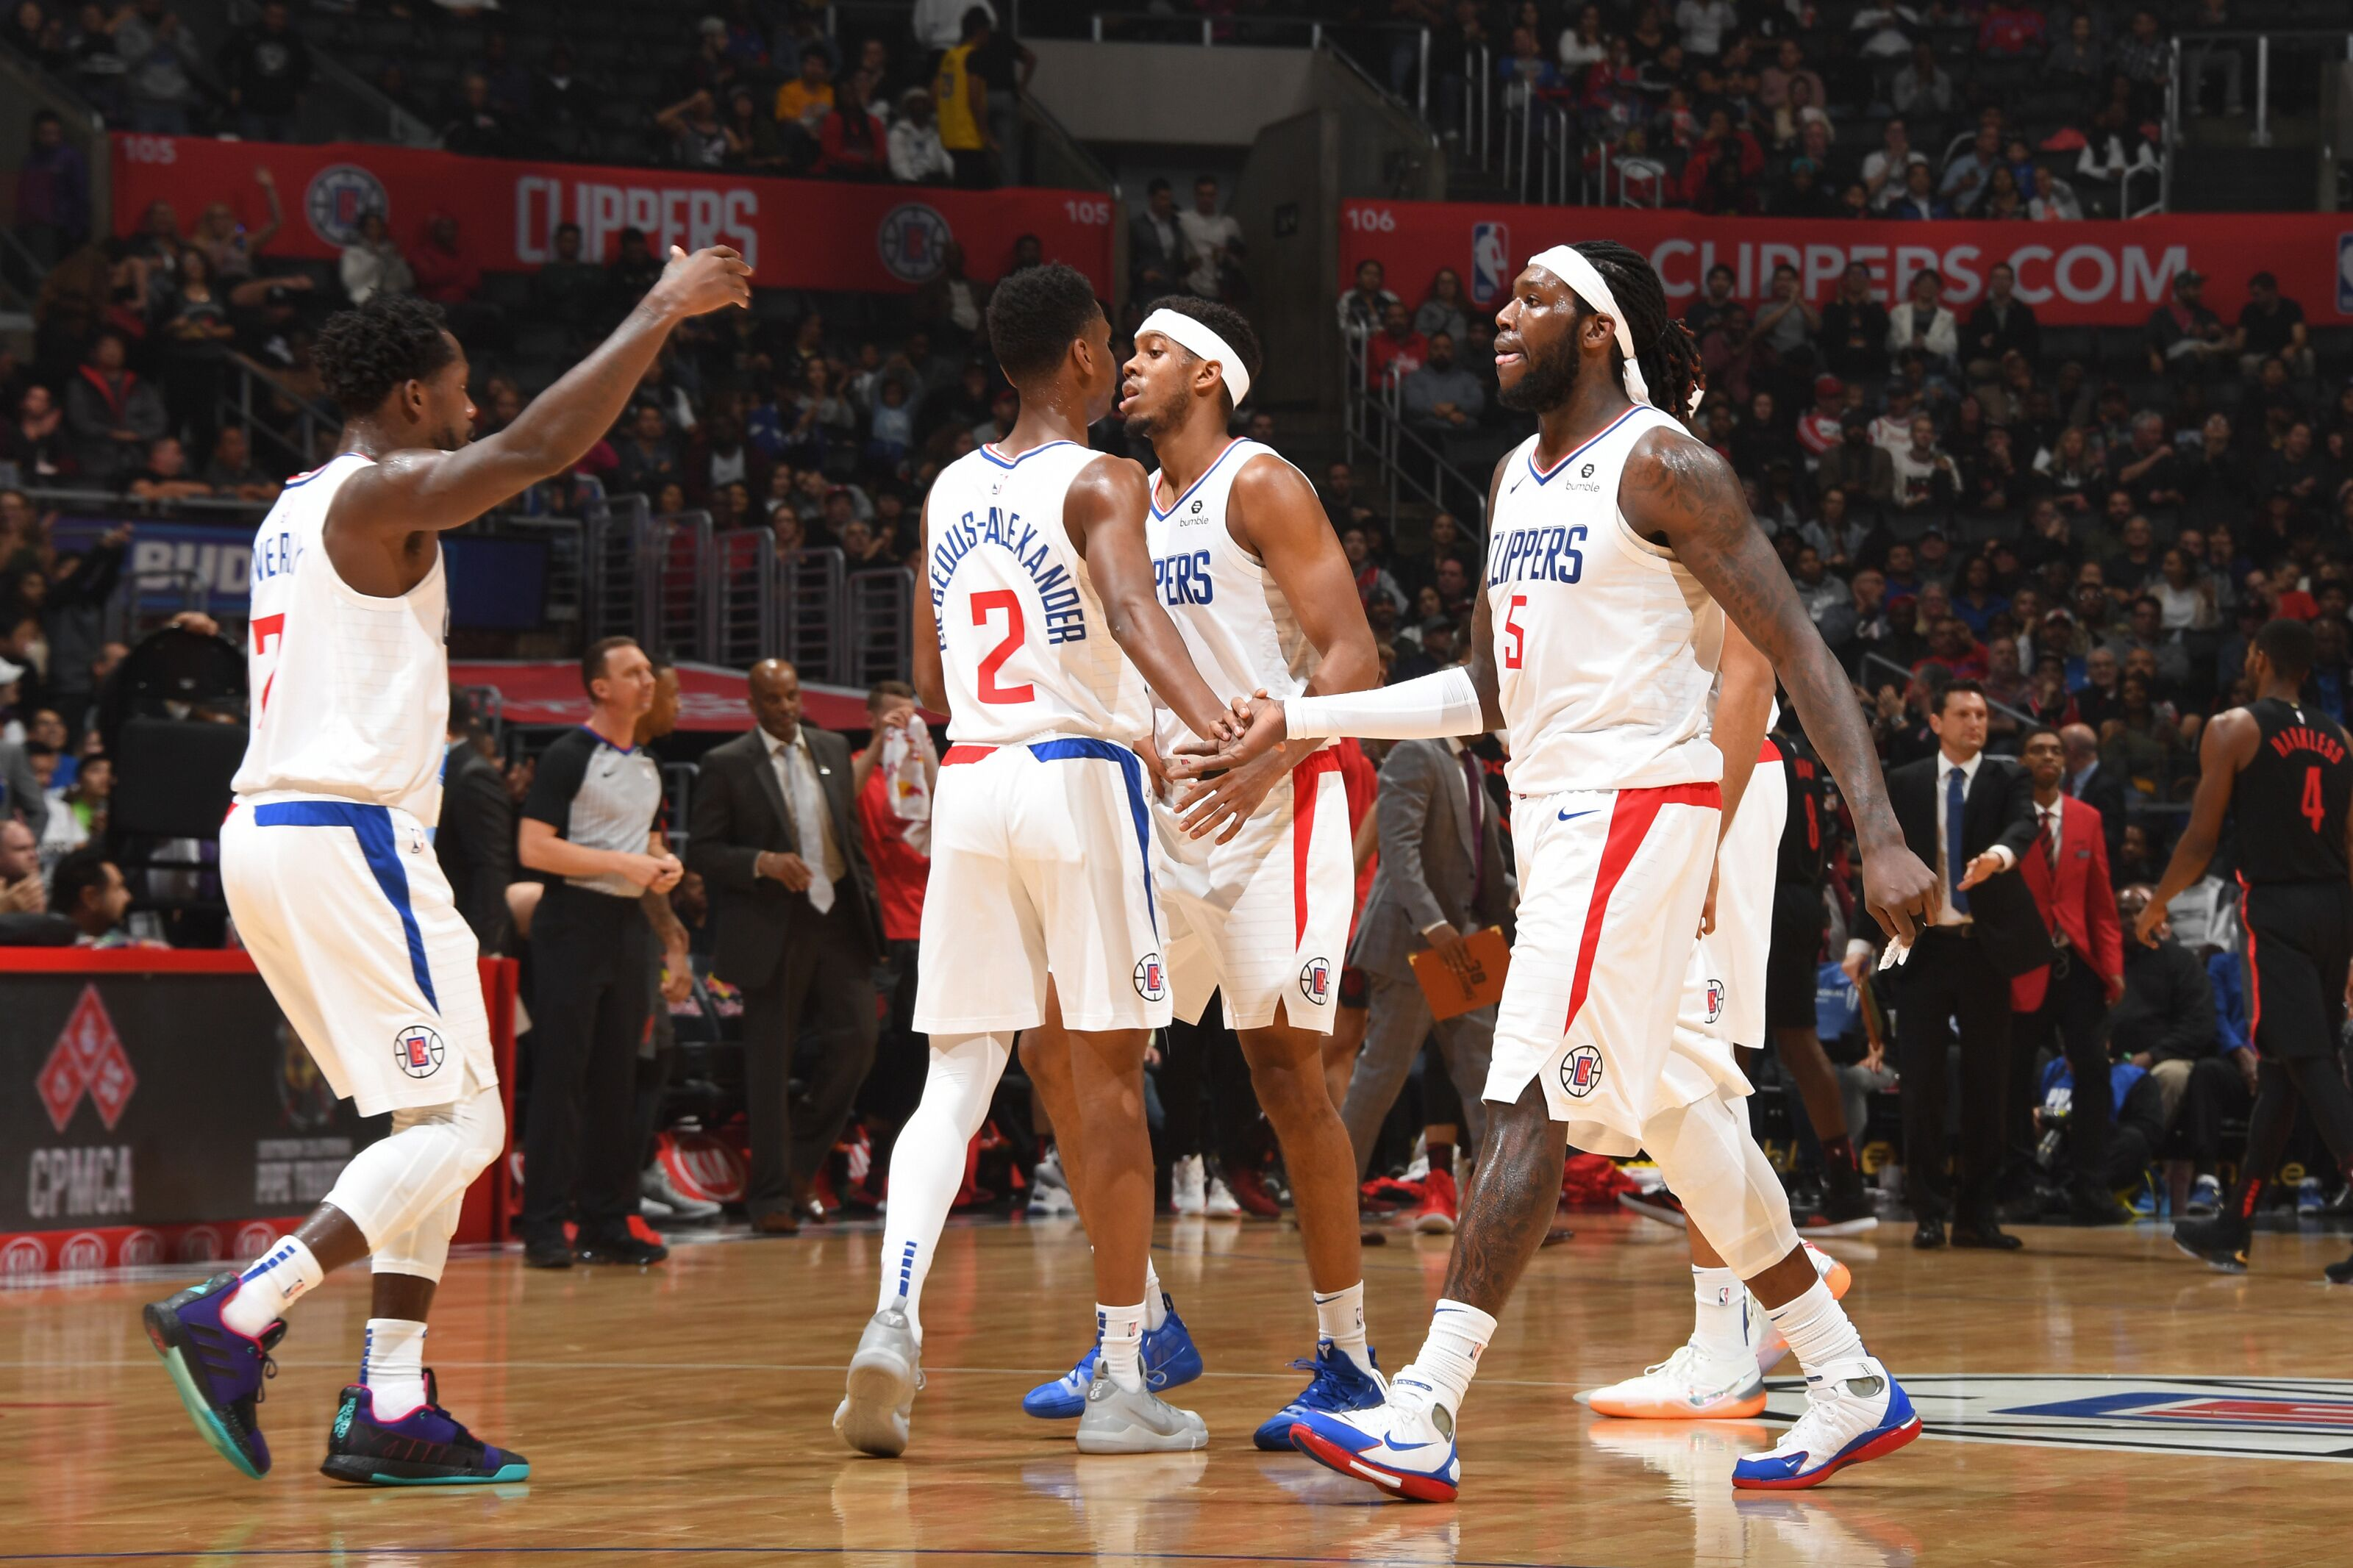 Los Angeles Clippers: Top 10 moments of the 2018-19 NBA season